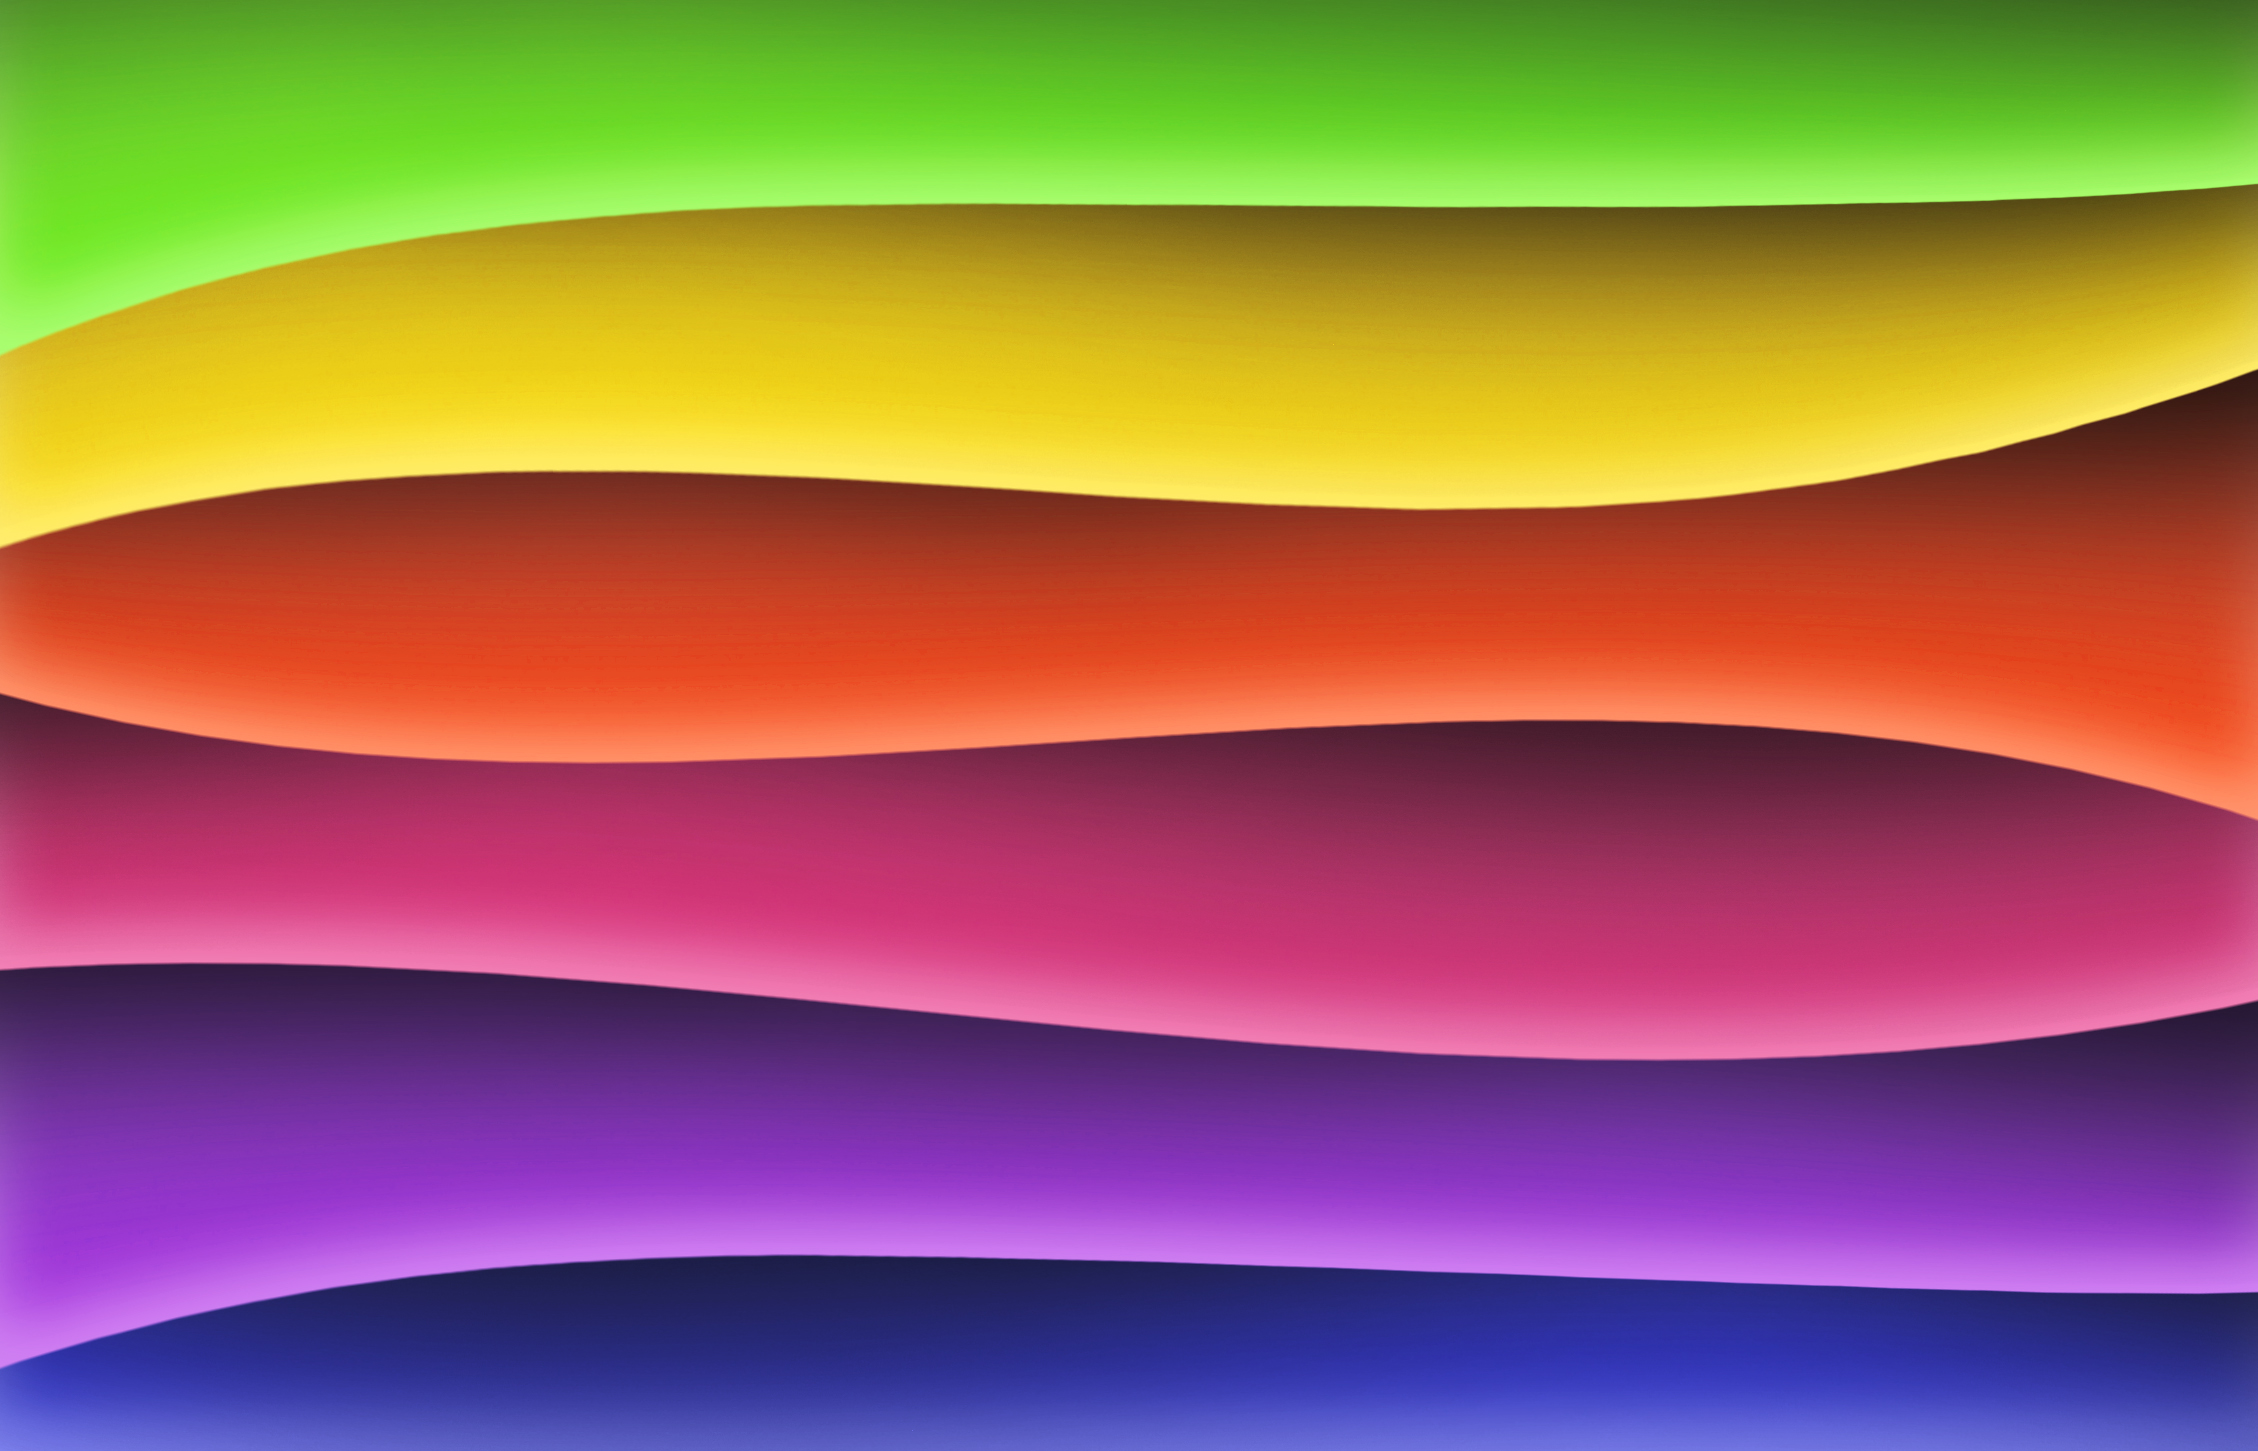 Rainbow waves wallpaper graphics, Abstract, Shape, Lines, Motion, HQ Photo